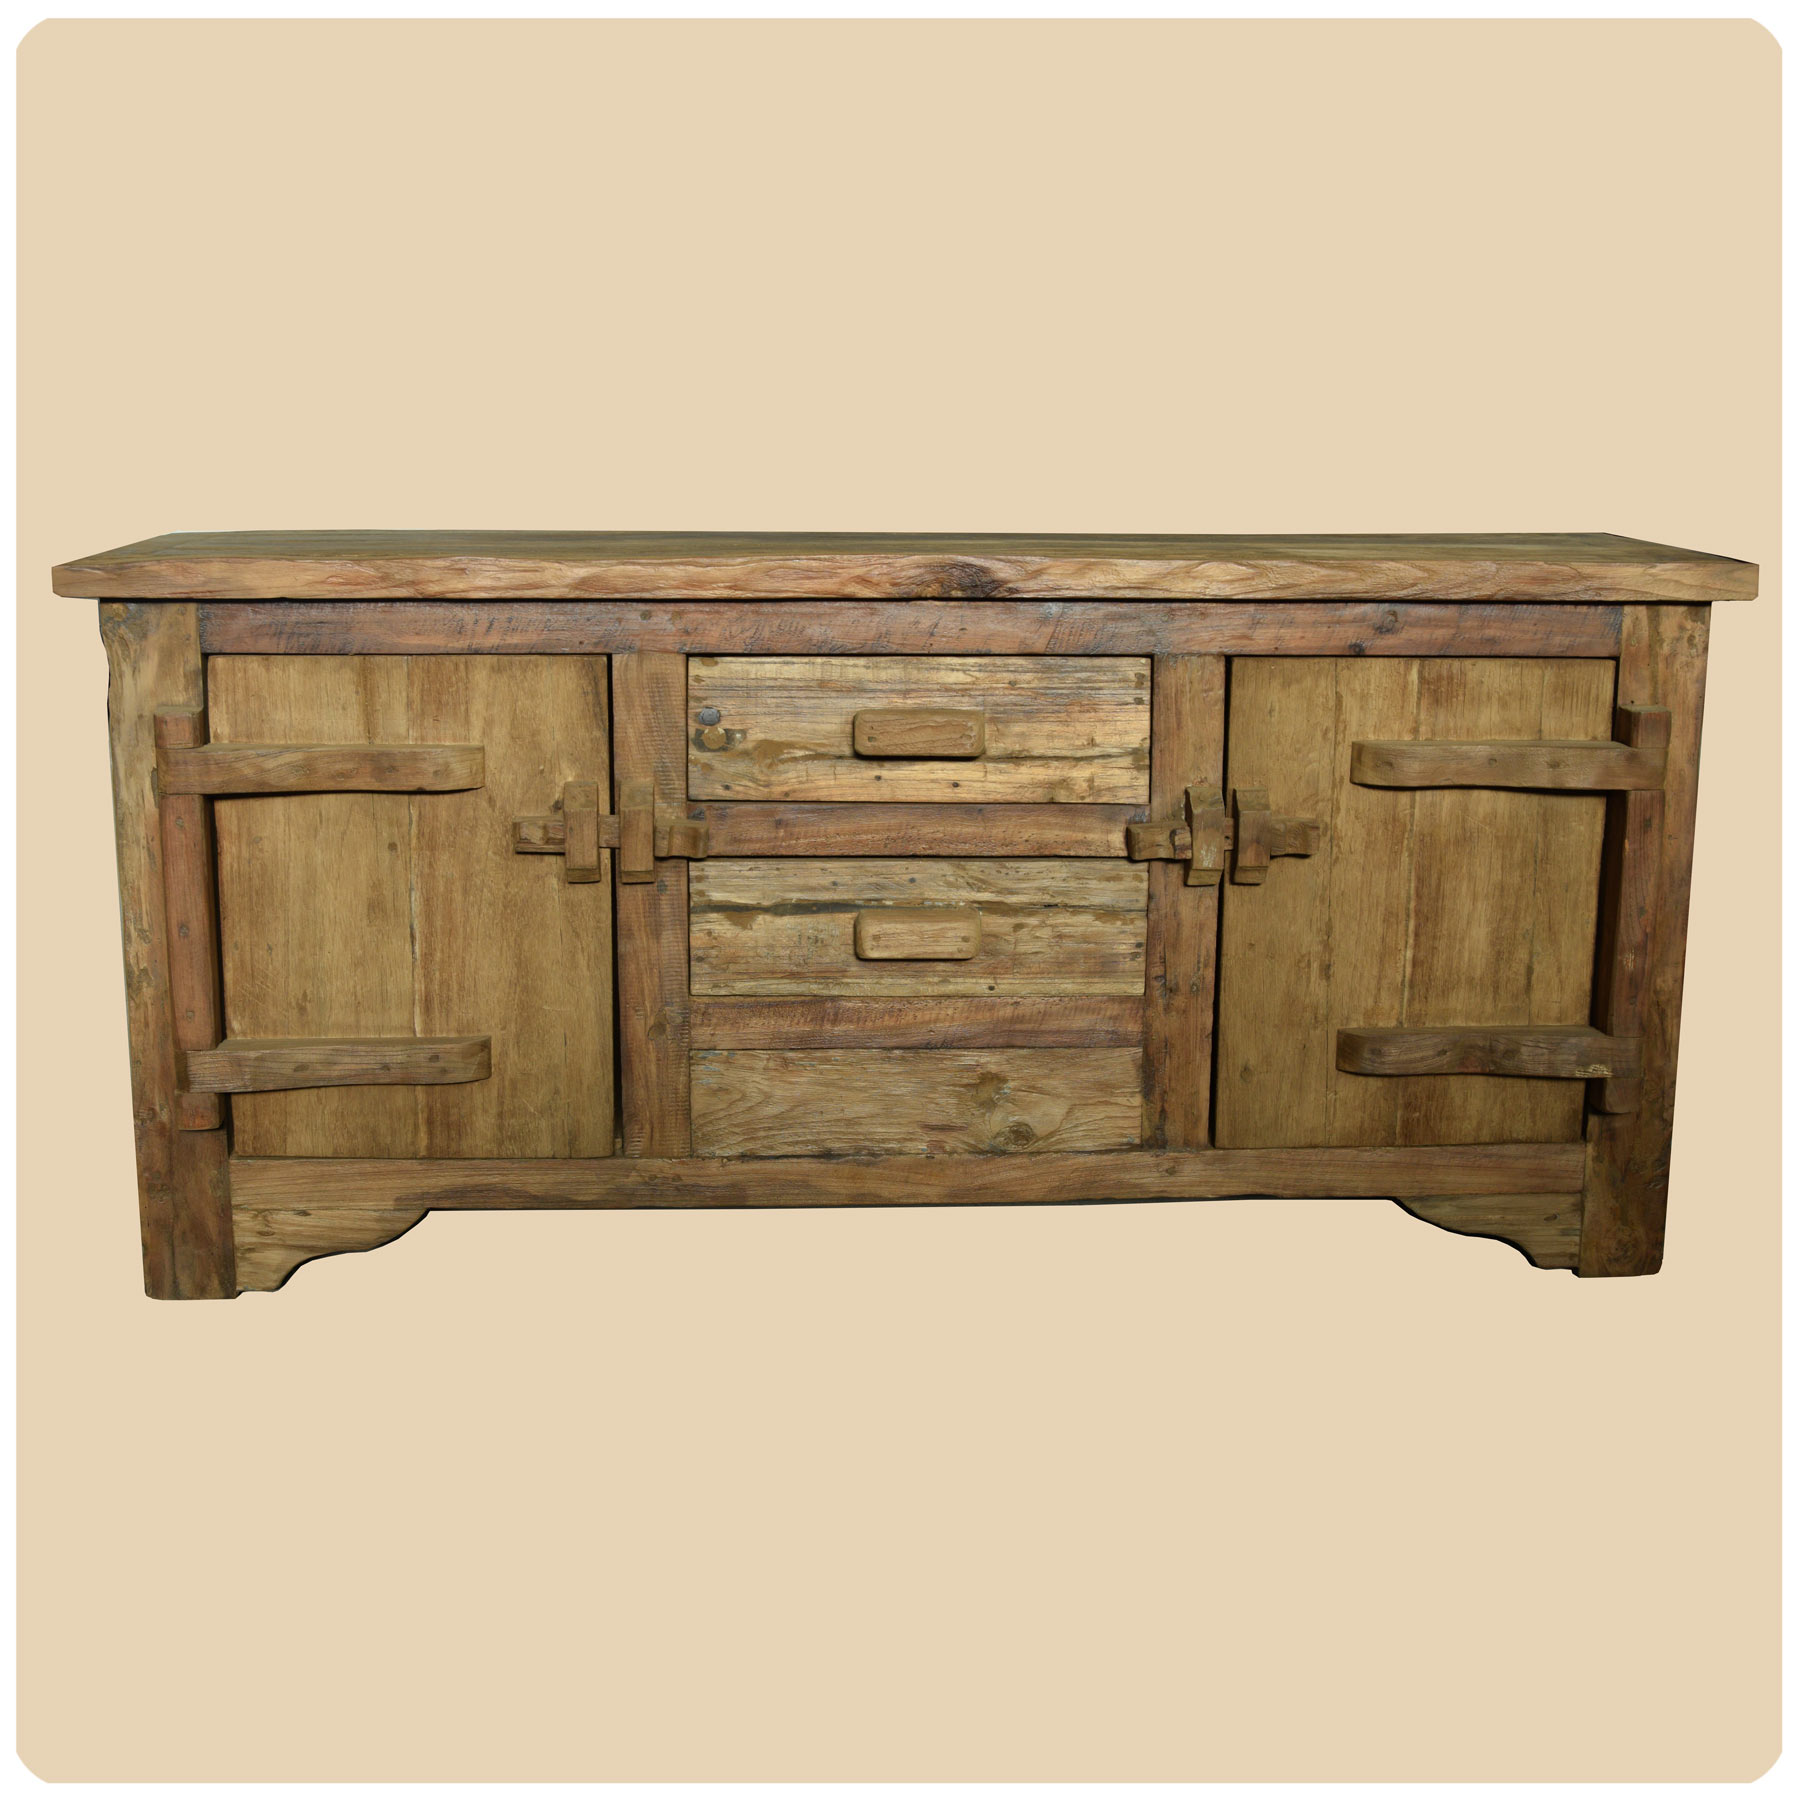 Teakholz Kommode Vintage Altholz Kommode Recycling Teak Holz Massiv Sideboard